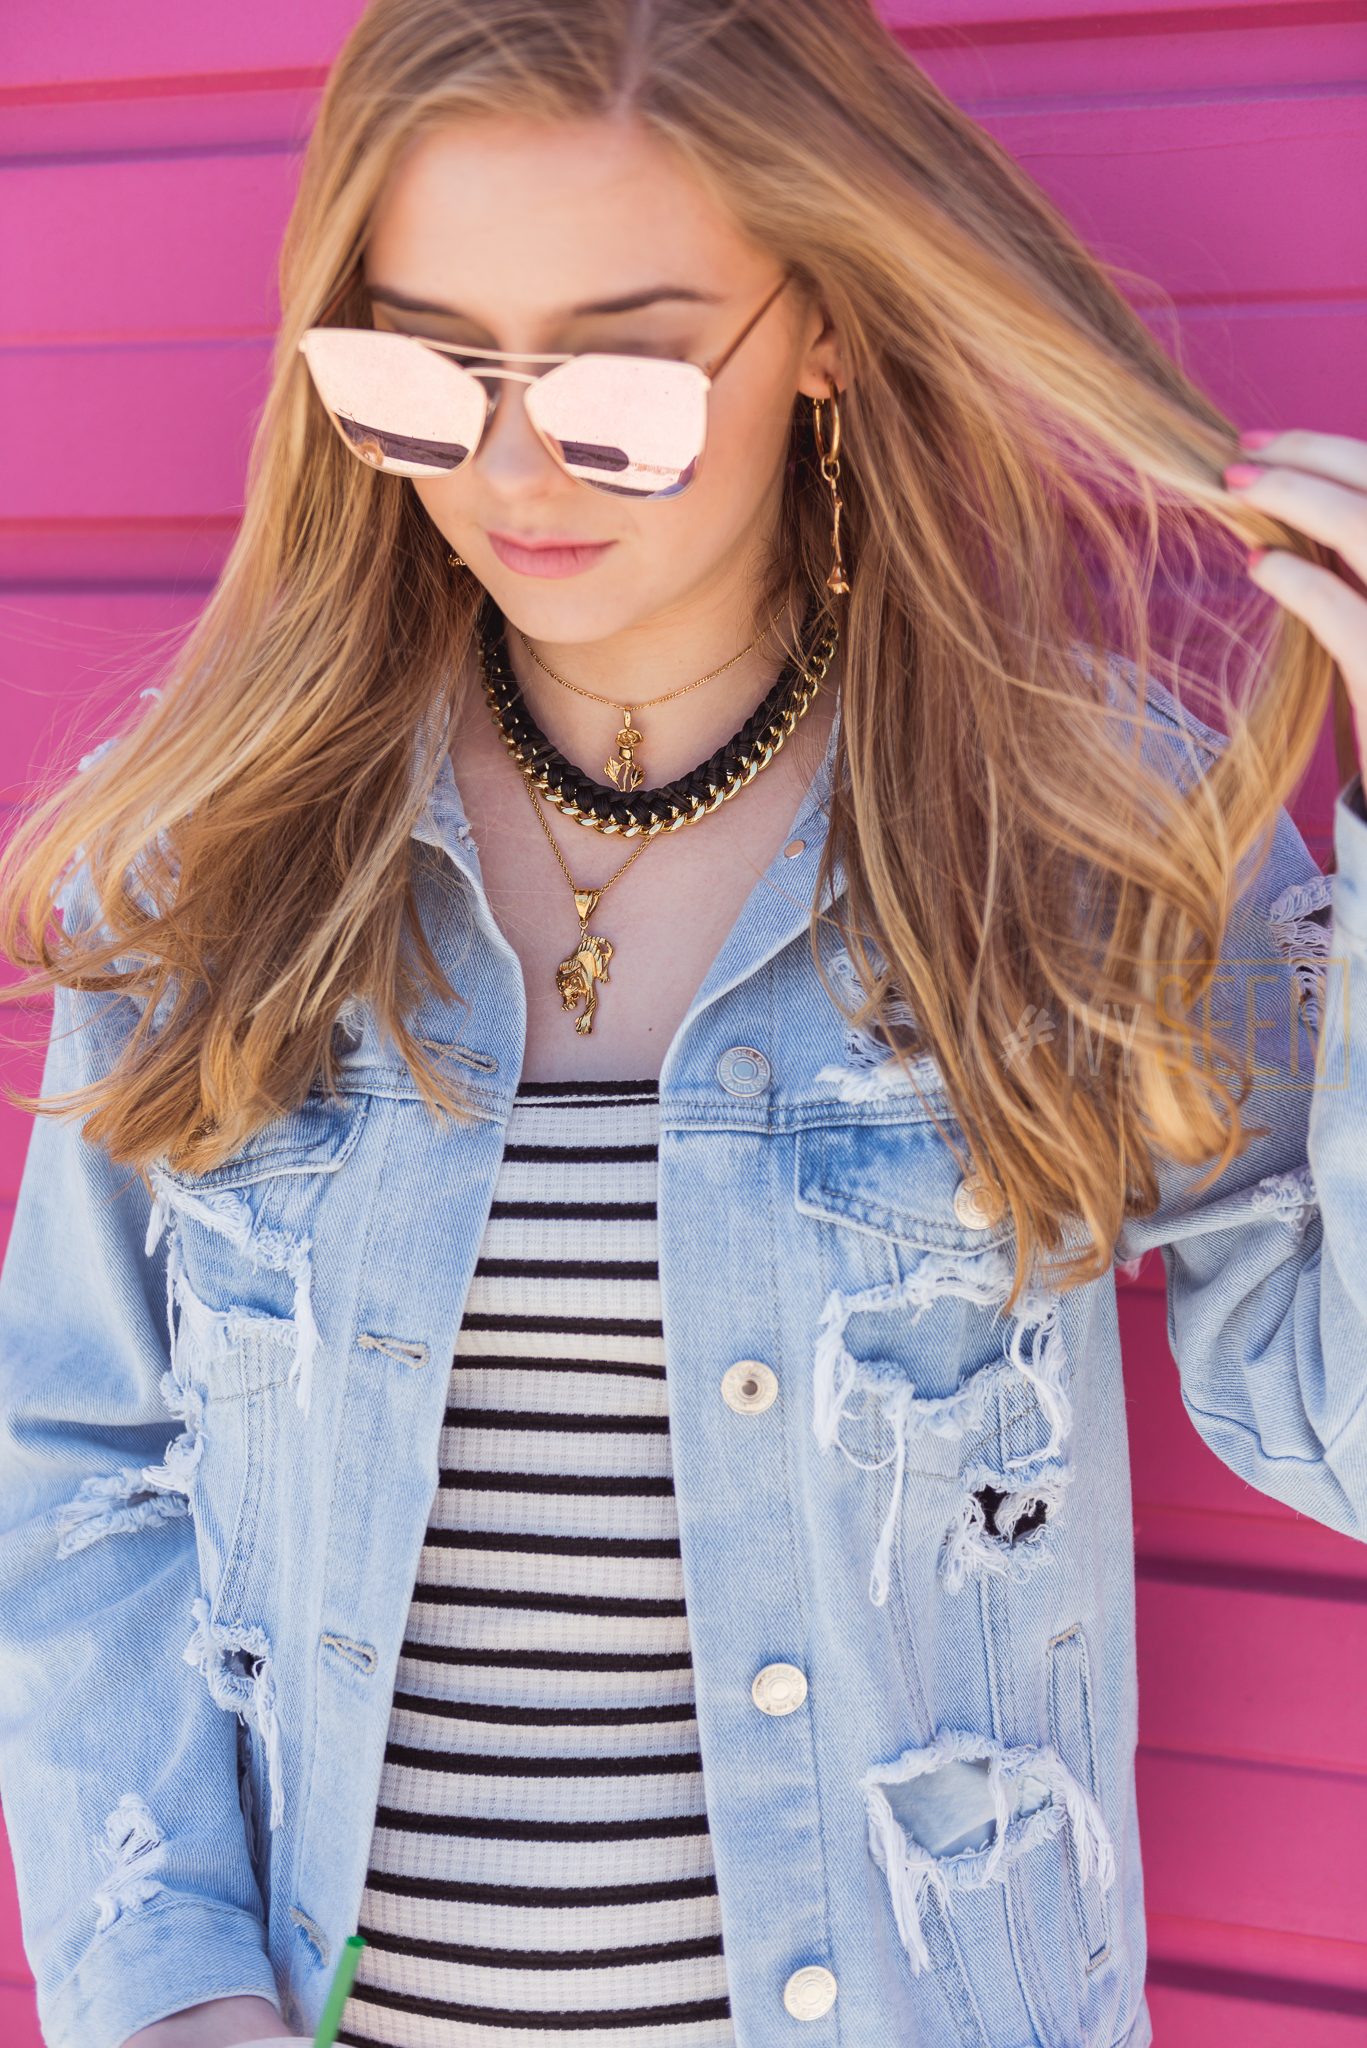 Hot Pink wall with teen wearing reflective shades, chokers, denim jacket and stirped tank